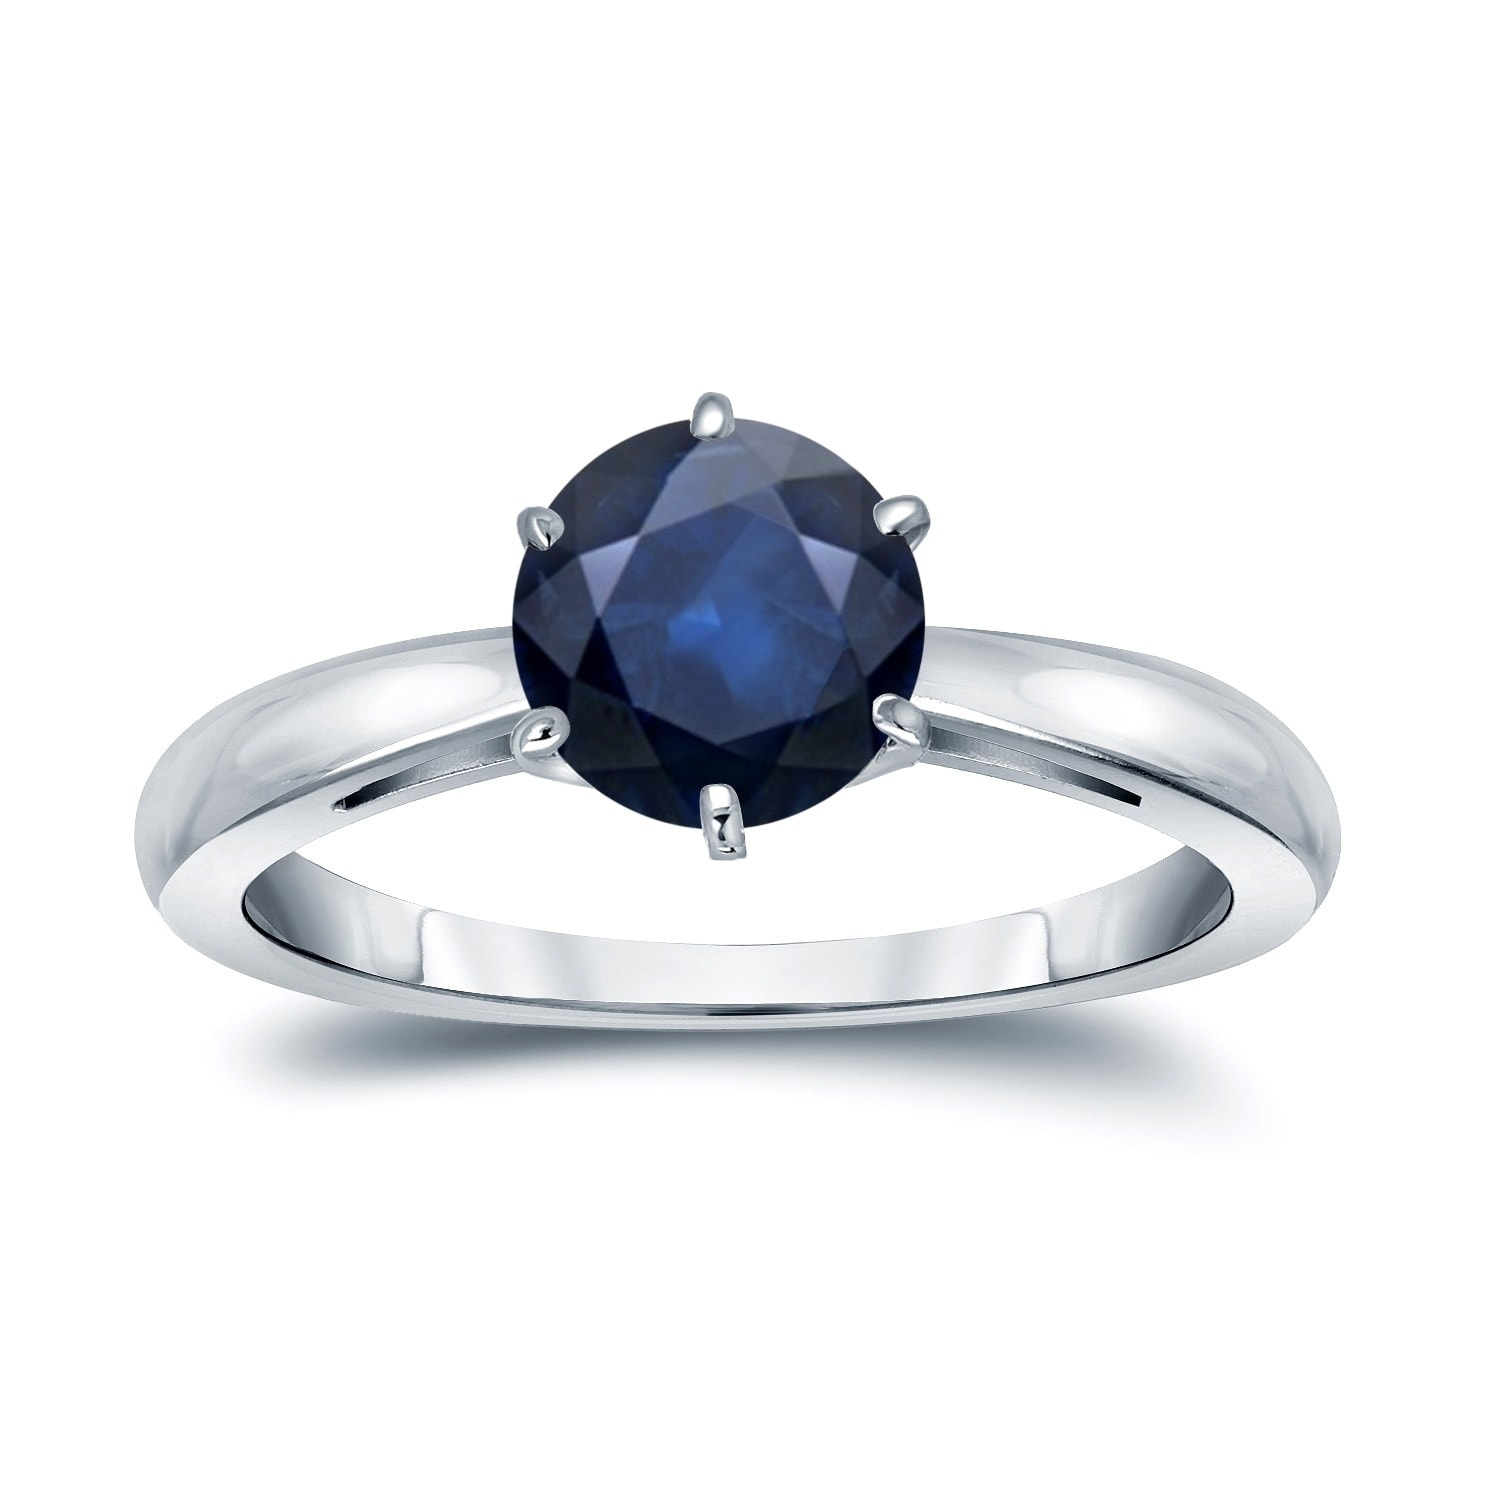 engagement s blue on jewelry gemstoneking gold from round white item sapphire rings accessories in women real natural ring solitaire ct